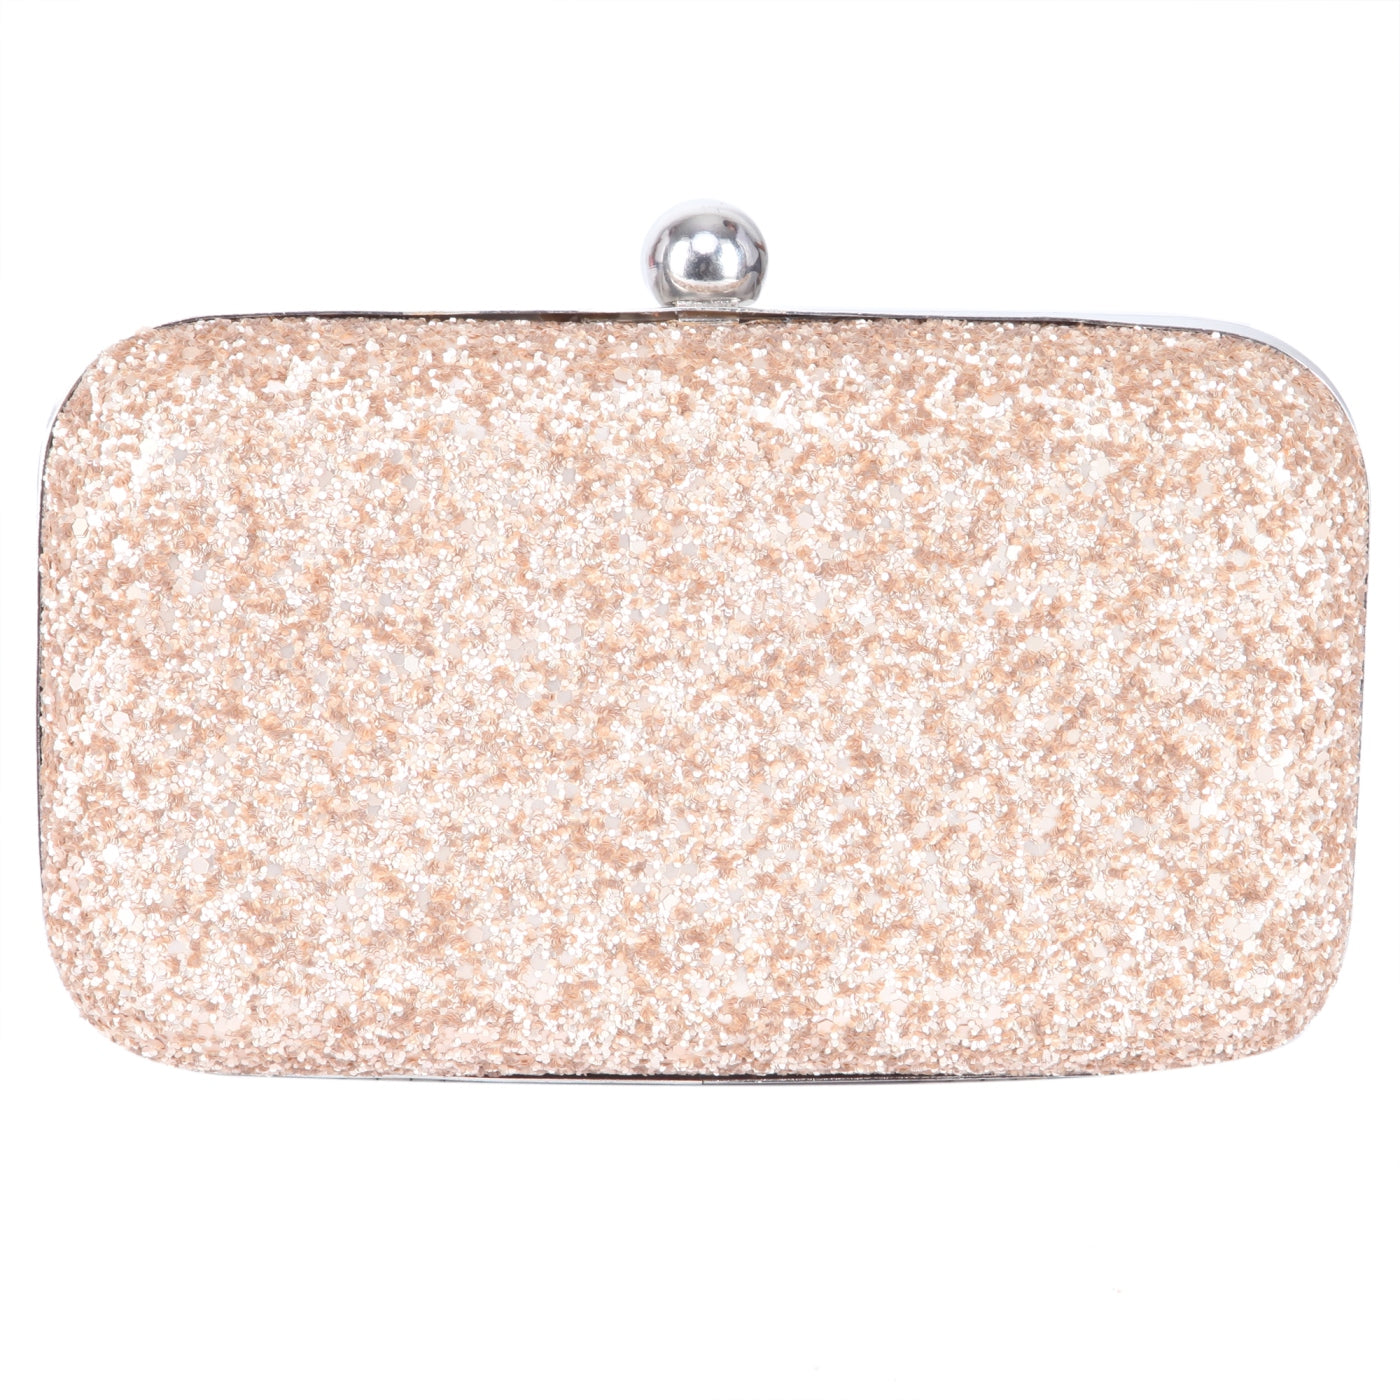 A classy companion to your evening sophistication is this gorgeous Gold color clutch from TARUSA. Given a structured design with a shimmery finish for an exquisite definition, this plush and durable Fabric offers ample room for all your makeup and beauty essentials.